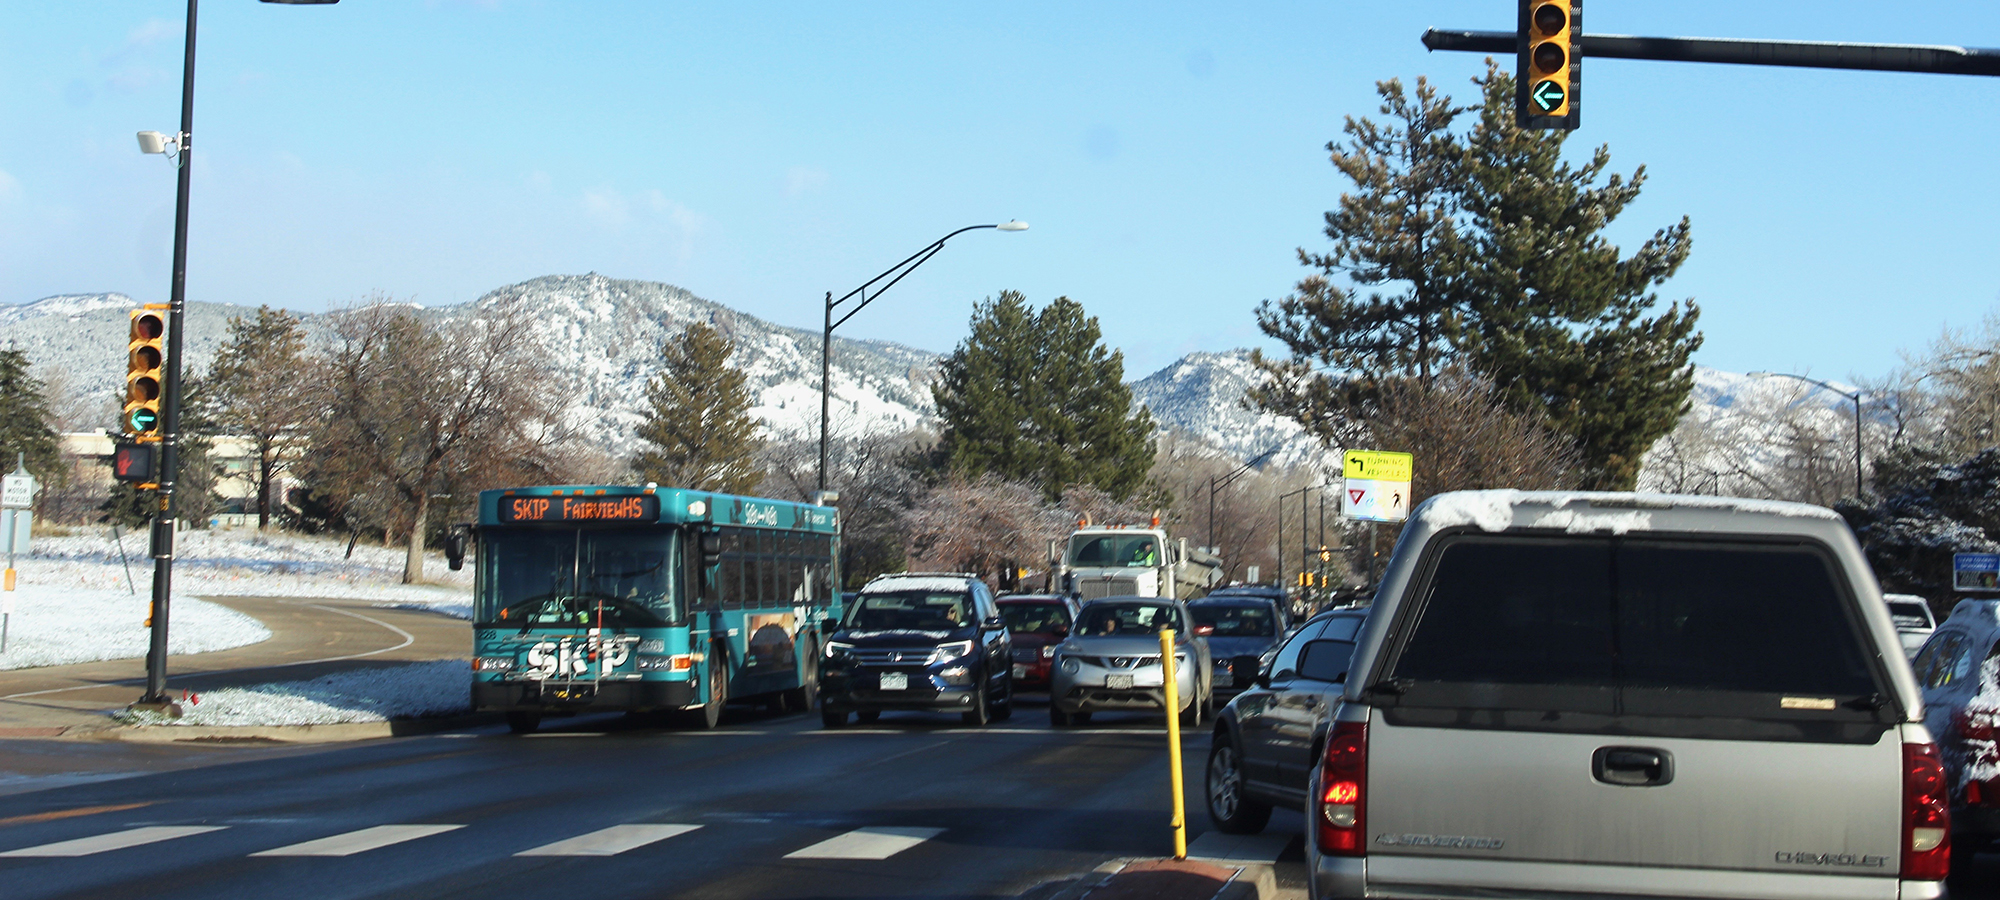 traffic on Broadway during rush hour in Boulder, Colorado